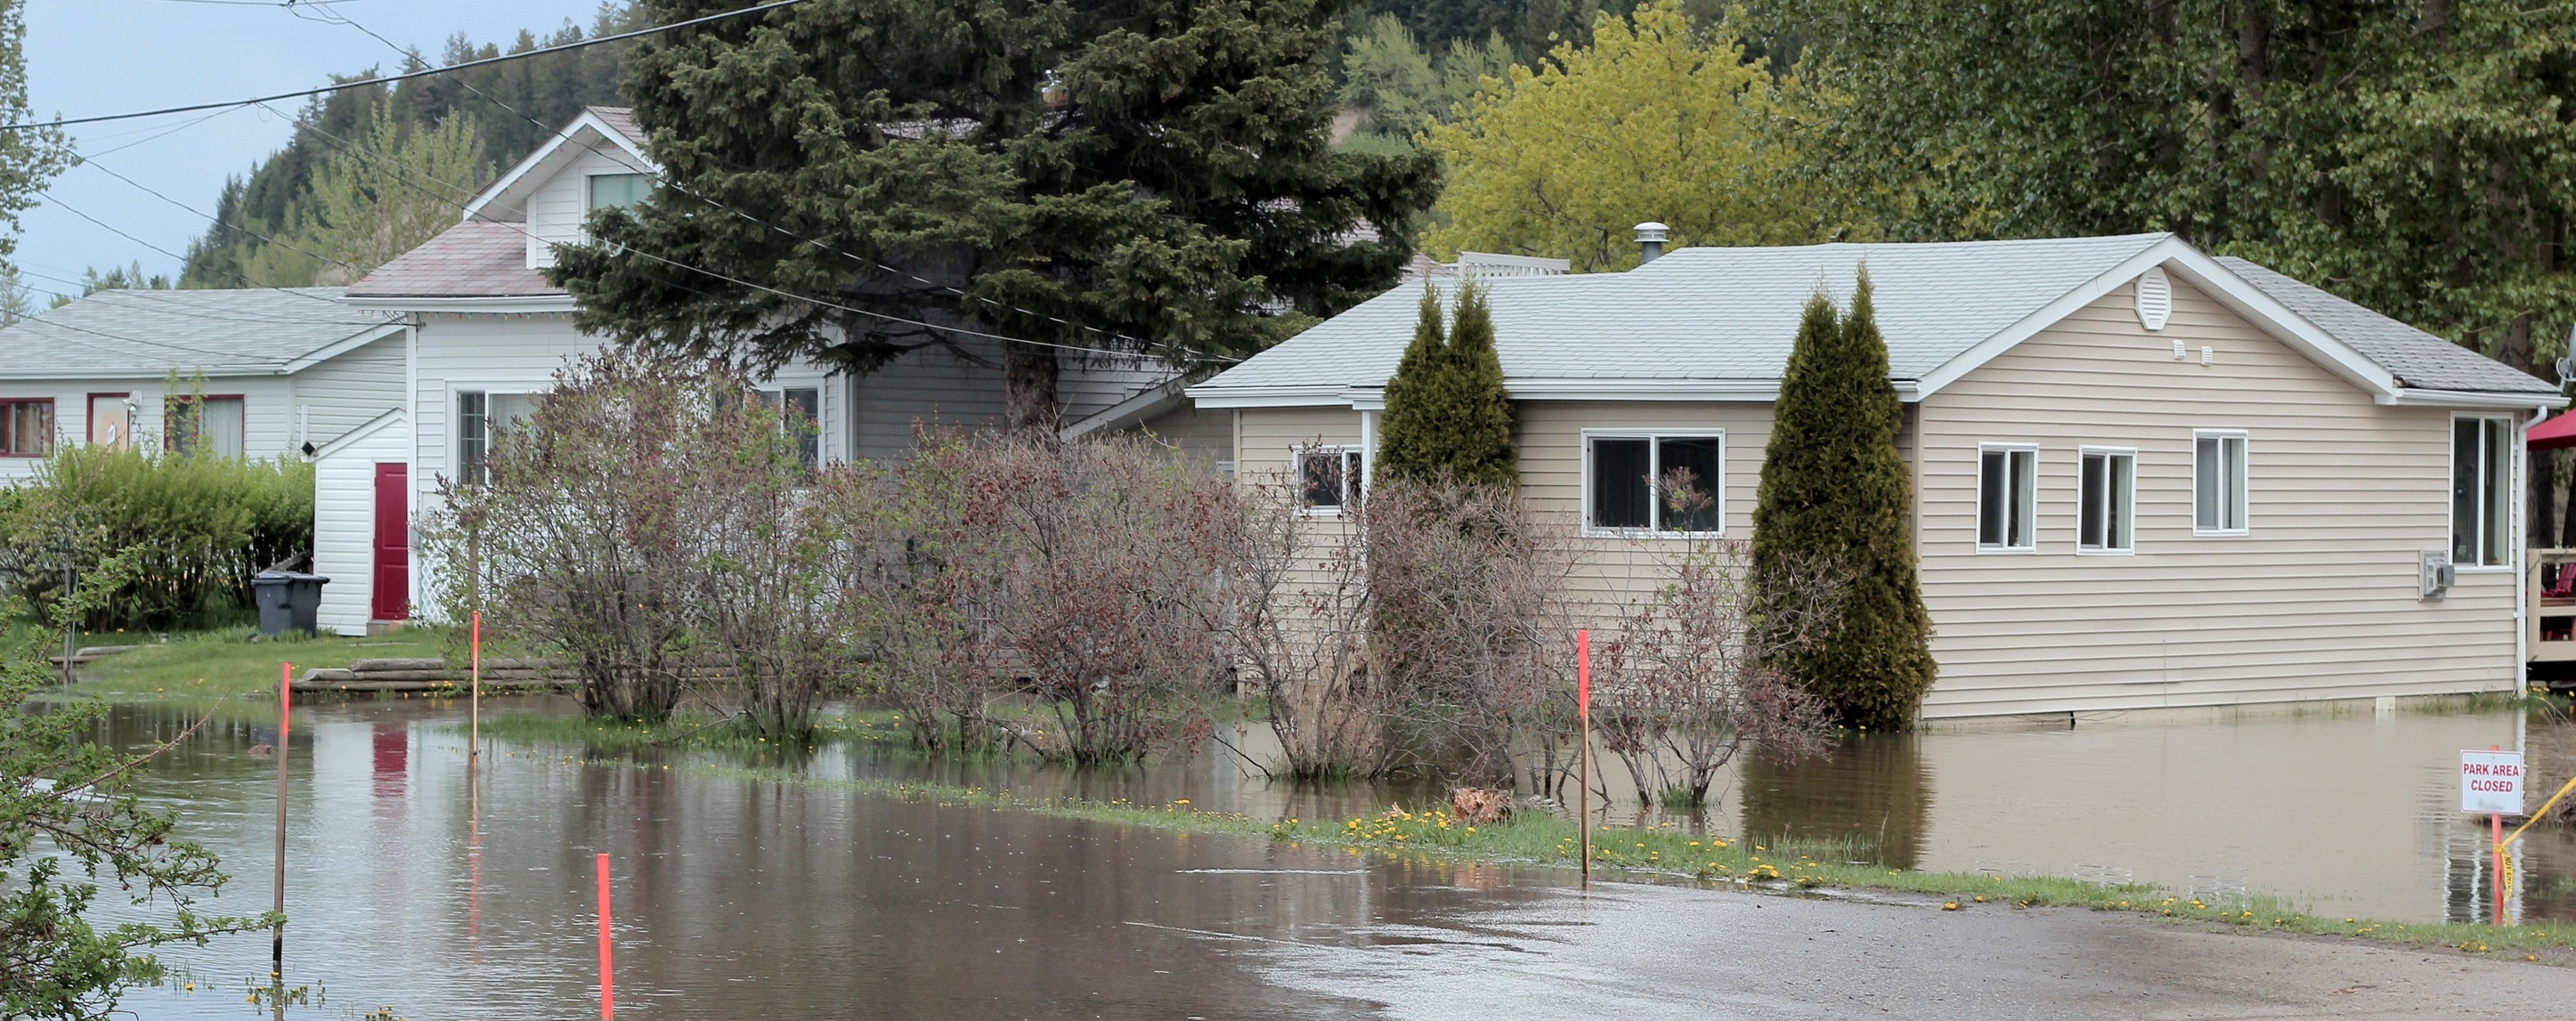 (featured)encapsulating after flooding (stock photo).jpg